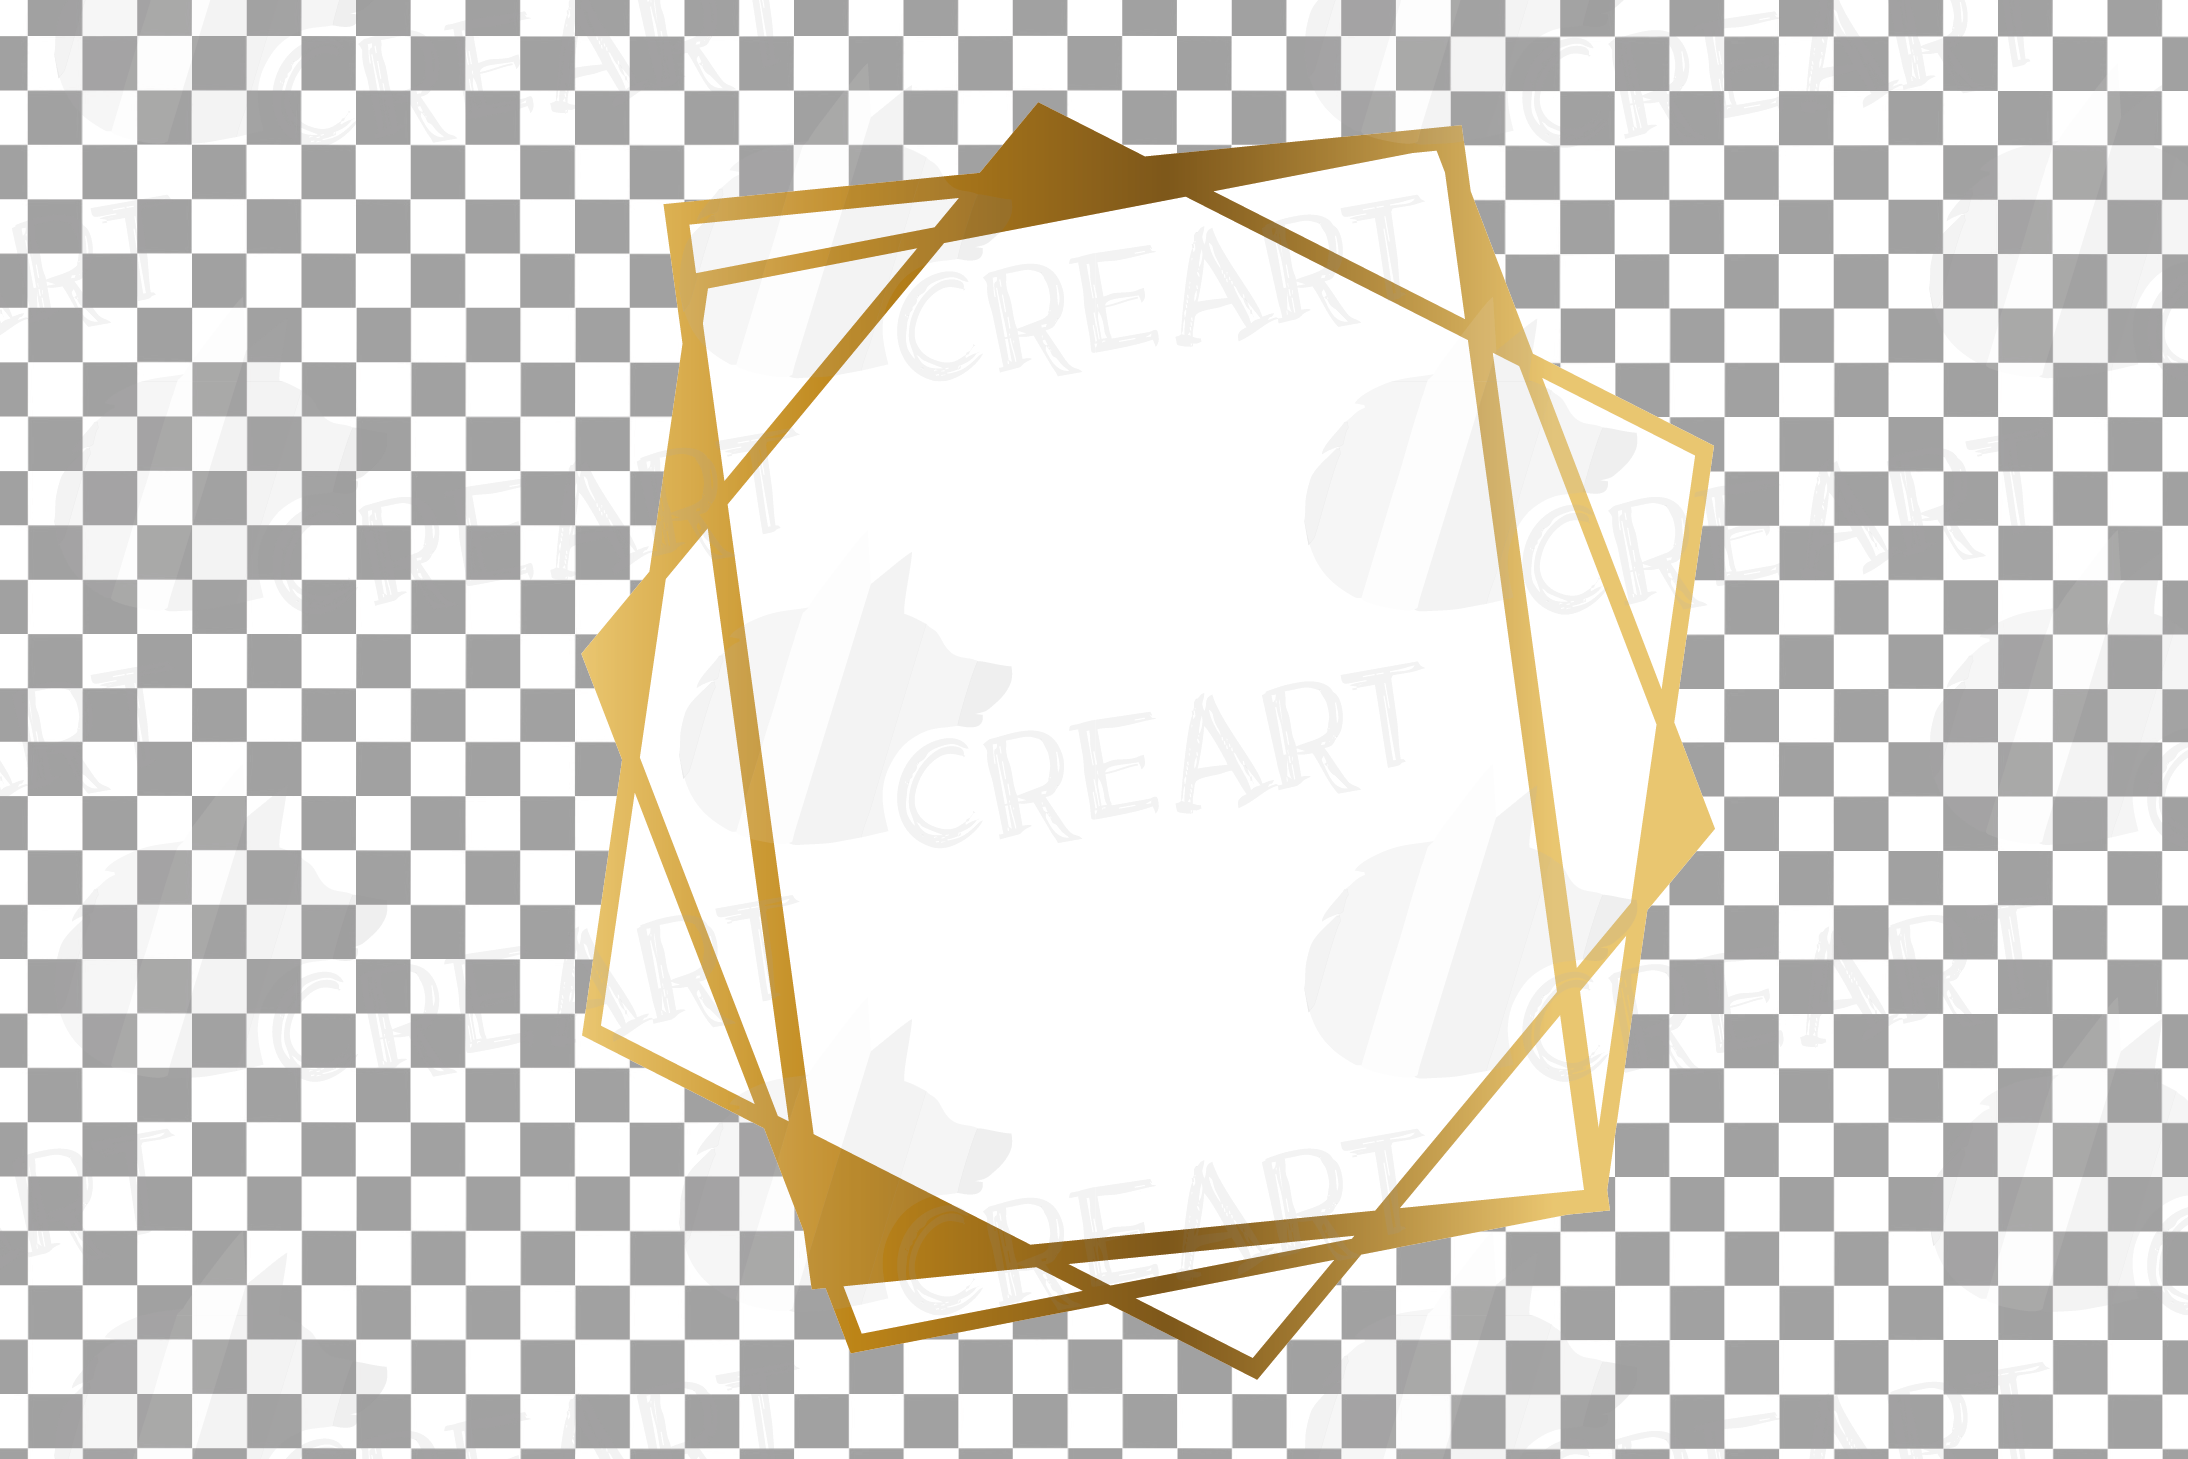 Chaotic geometric golden frames, lineal frames clip art example image 15